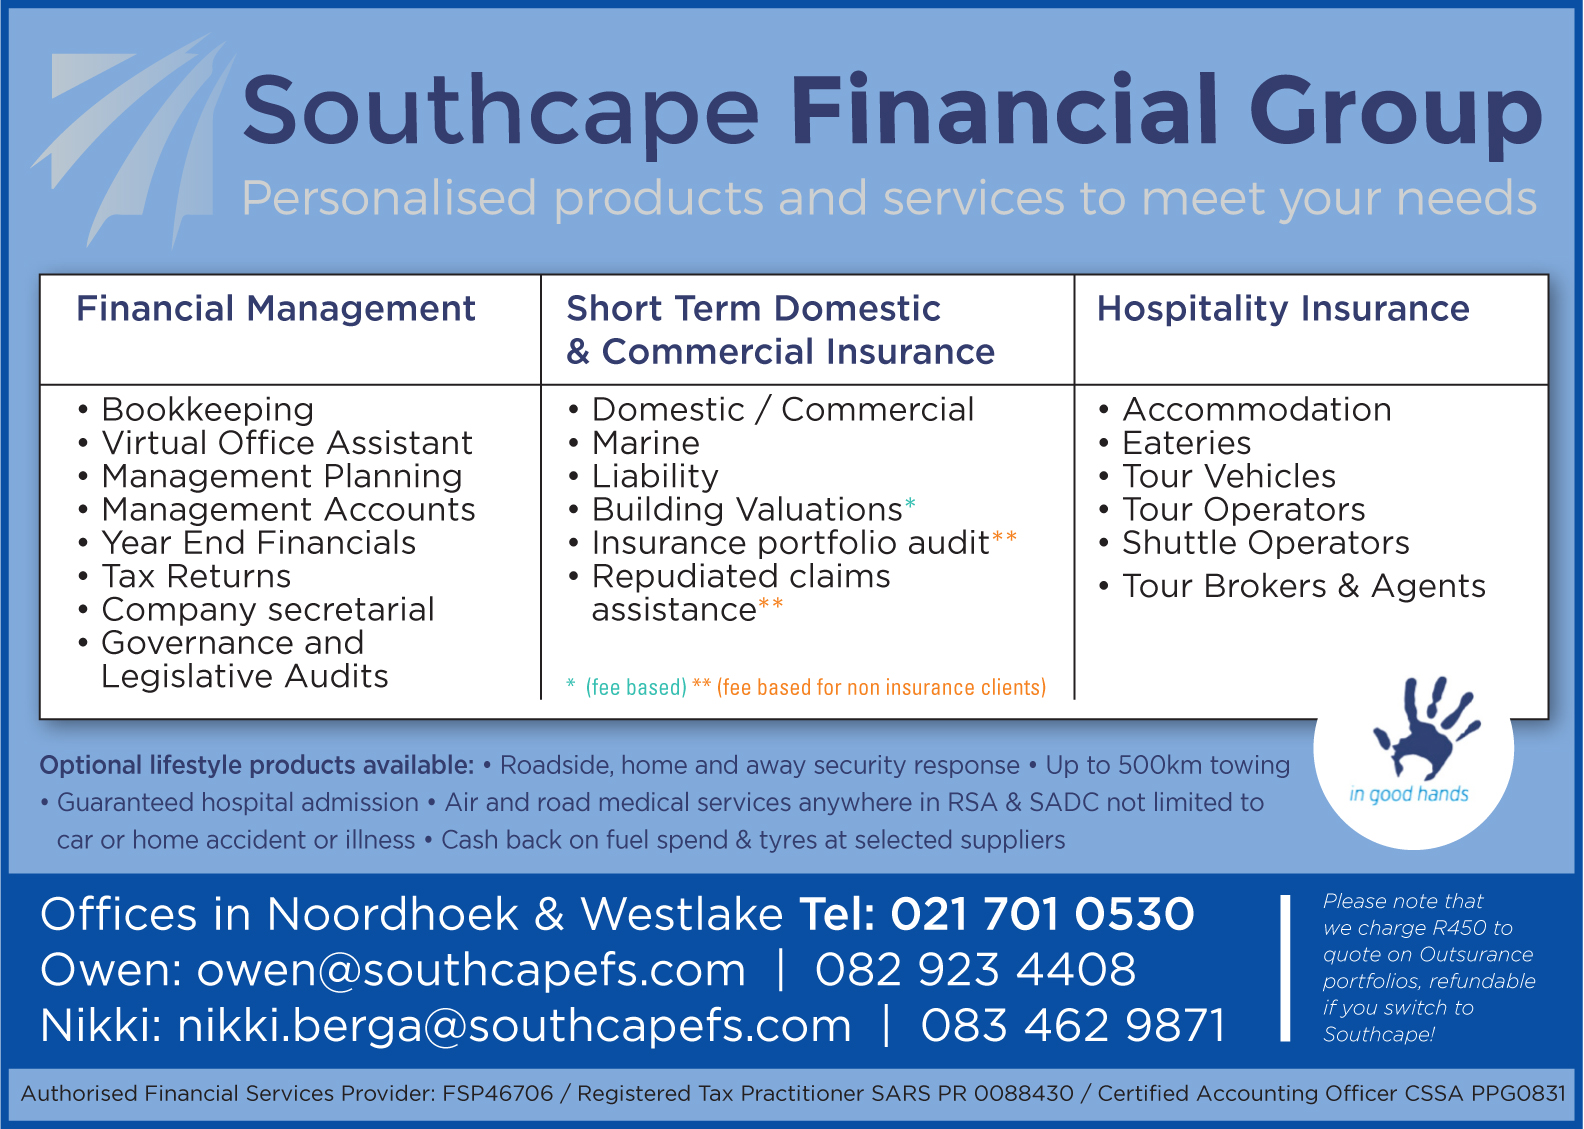 Southcape Financial Group